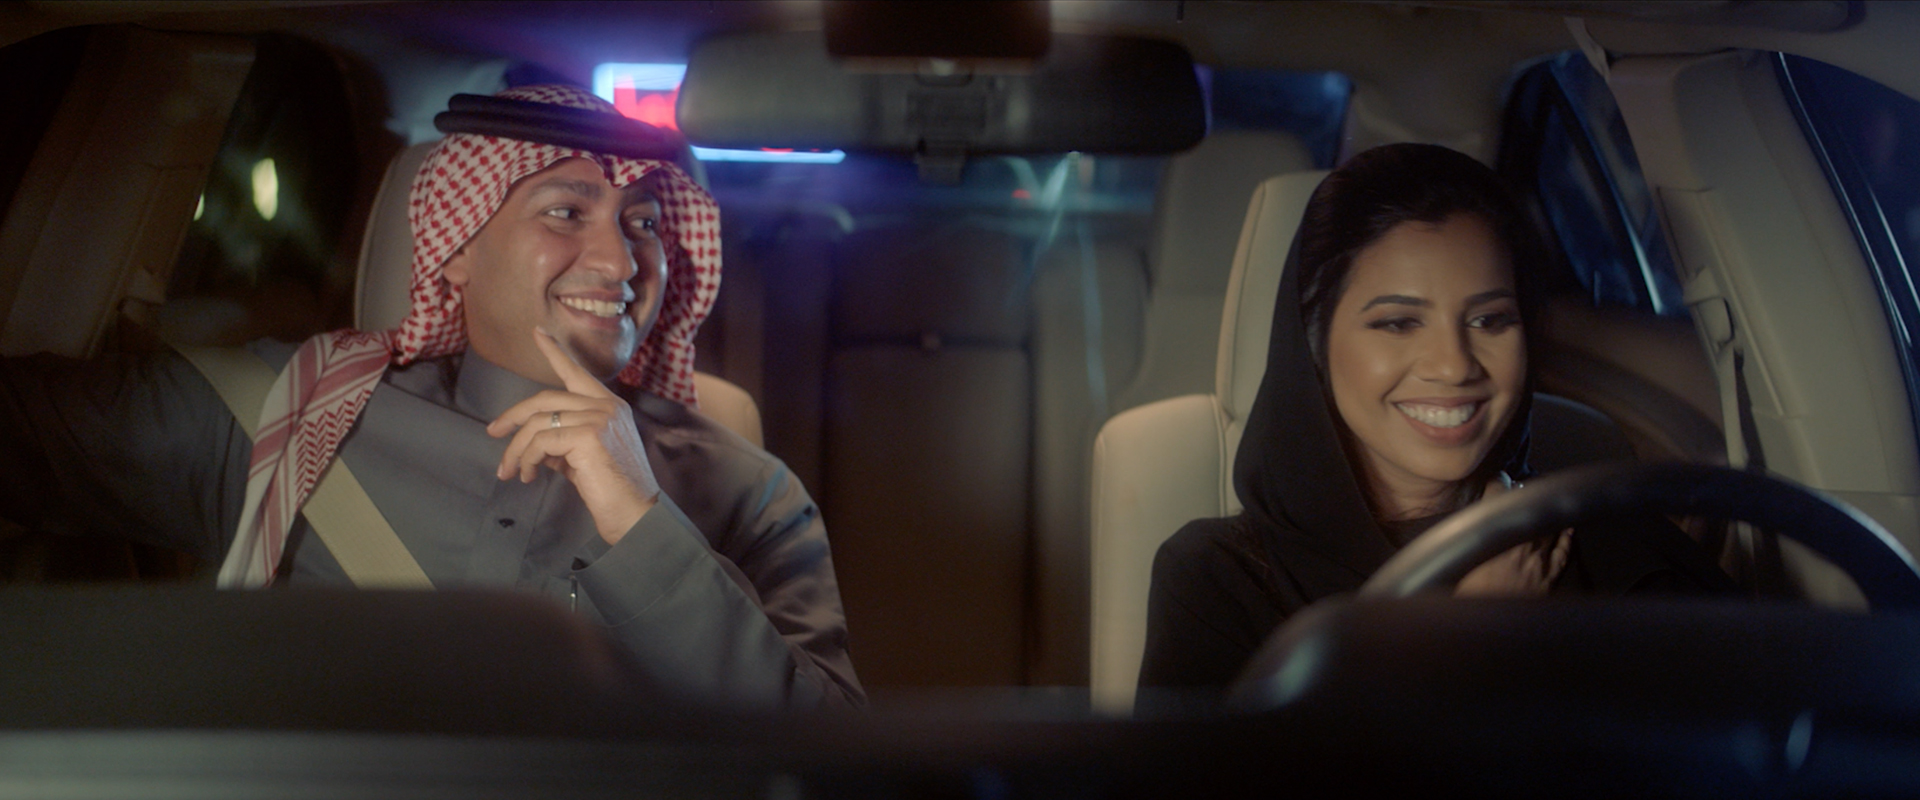 Are men ready for women drivers in Saudi Arabia?, Shell